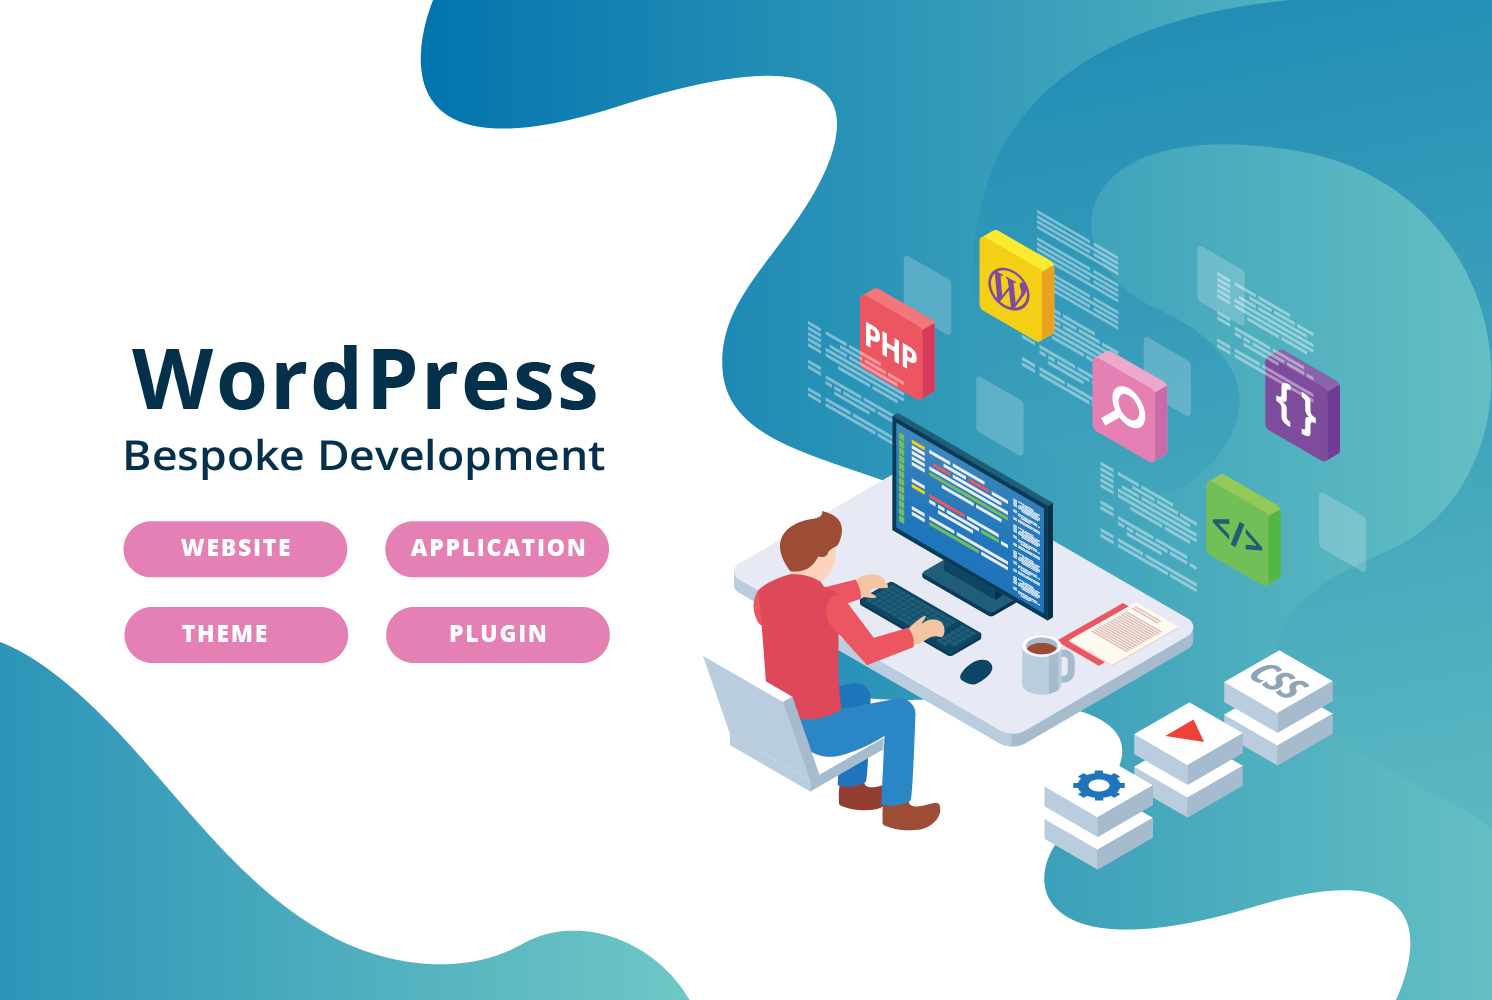 Wordpress Bespoke Development